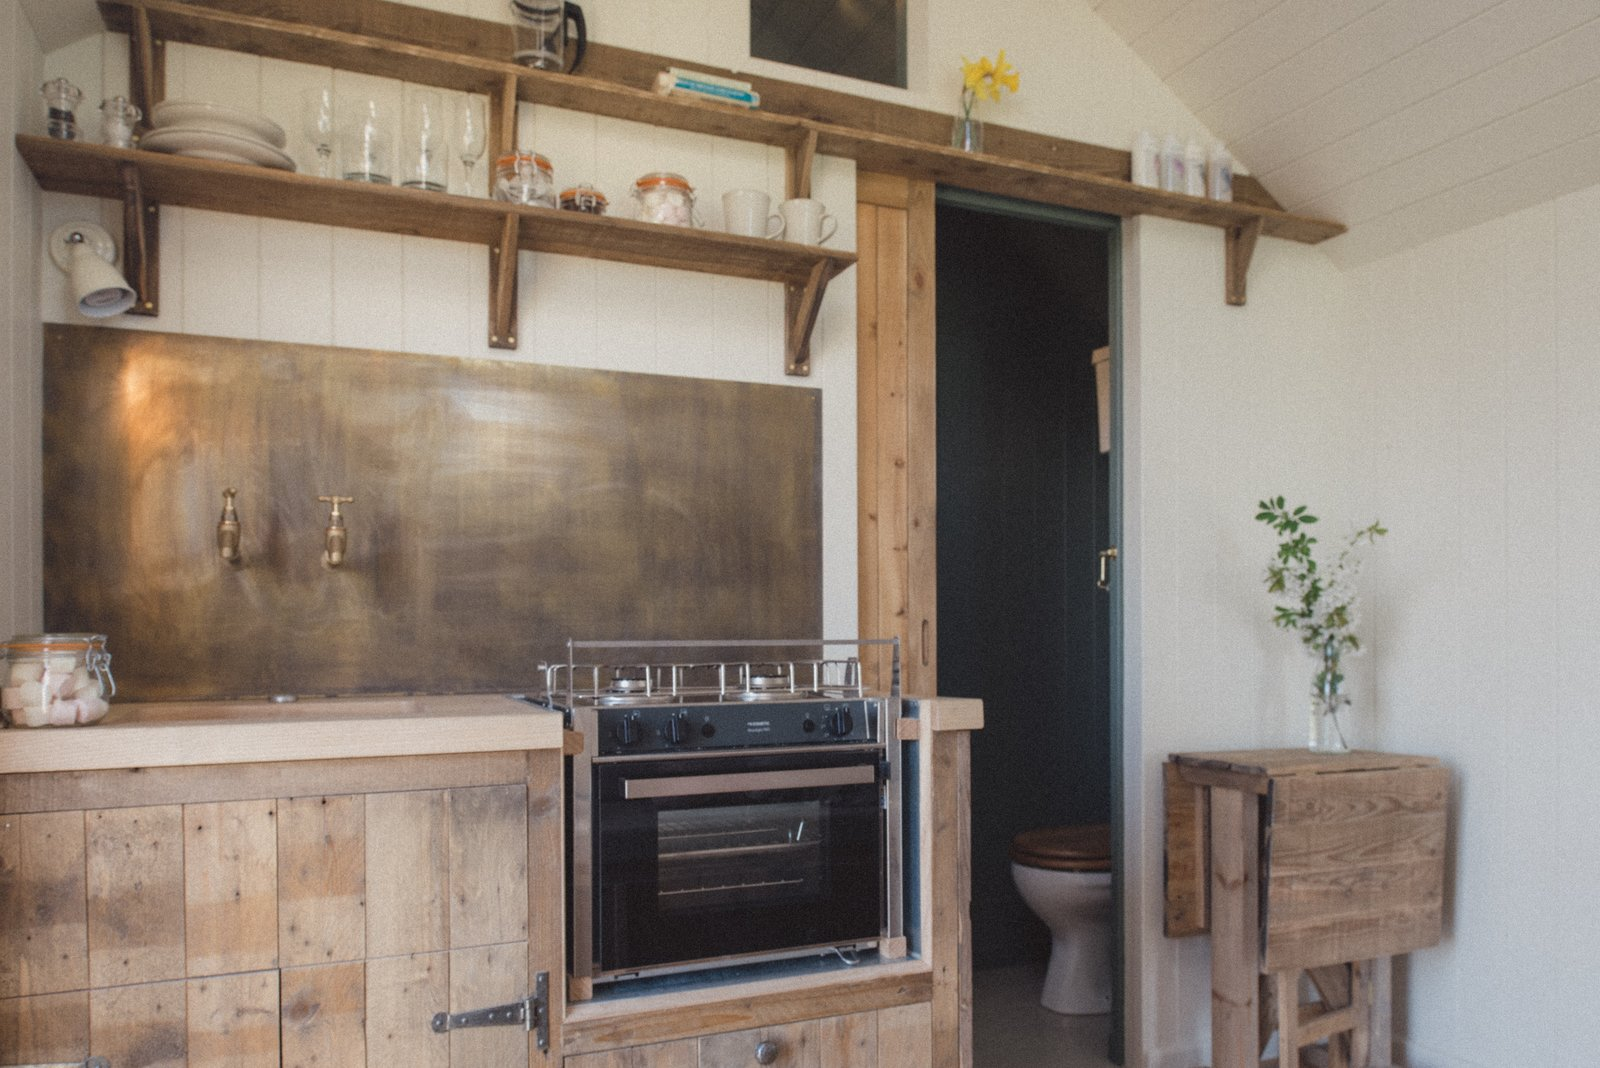 The huts are all designed and handcrafted by Dorset-based builders Plankbridge.